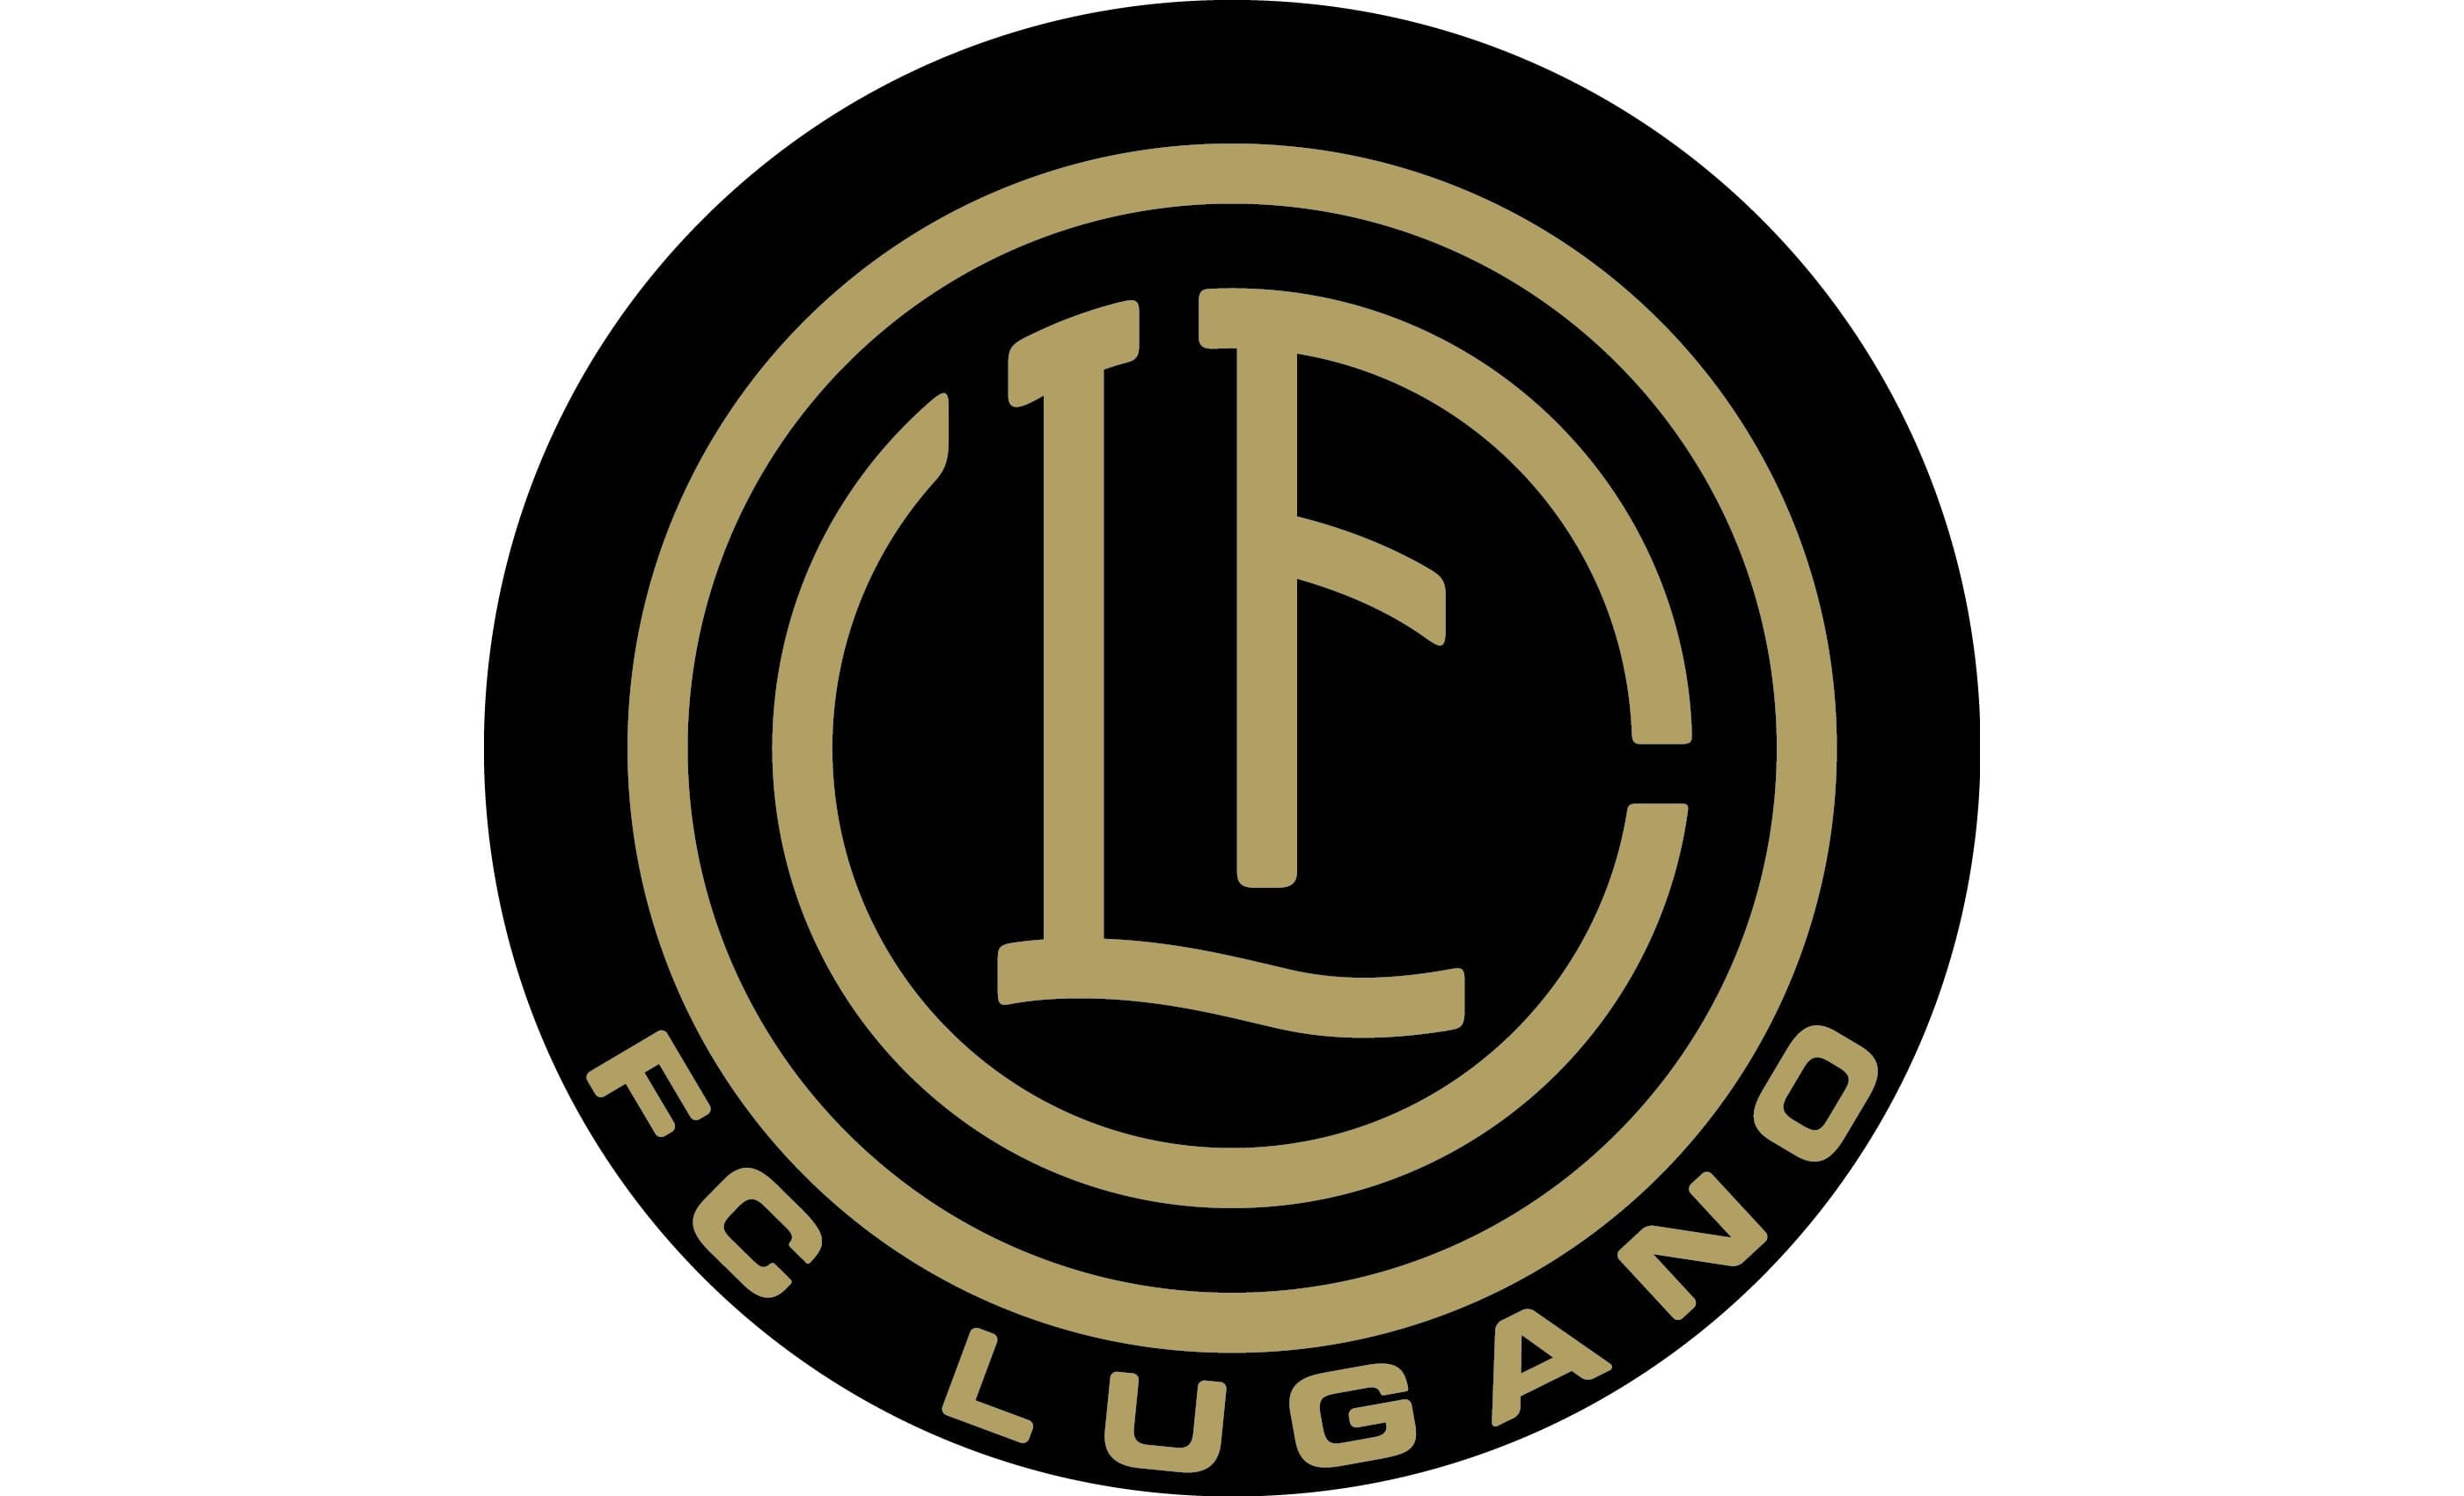 lugano logo and symbol meaning history png lugano logo and symbol meaning